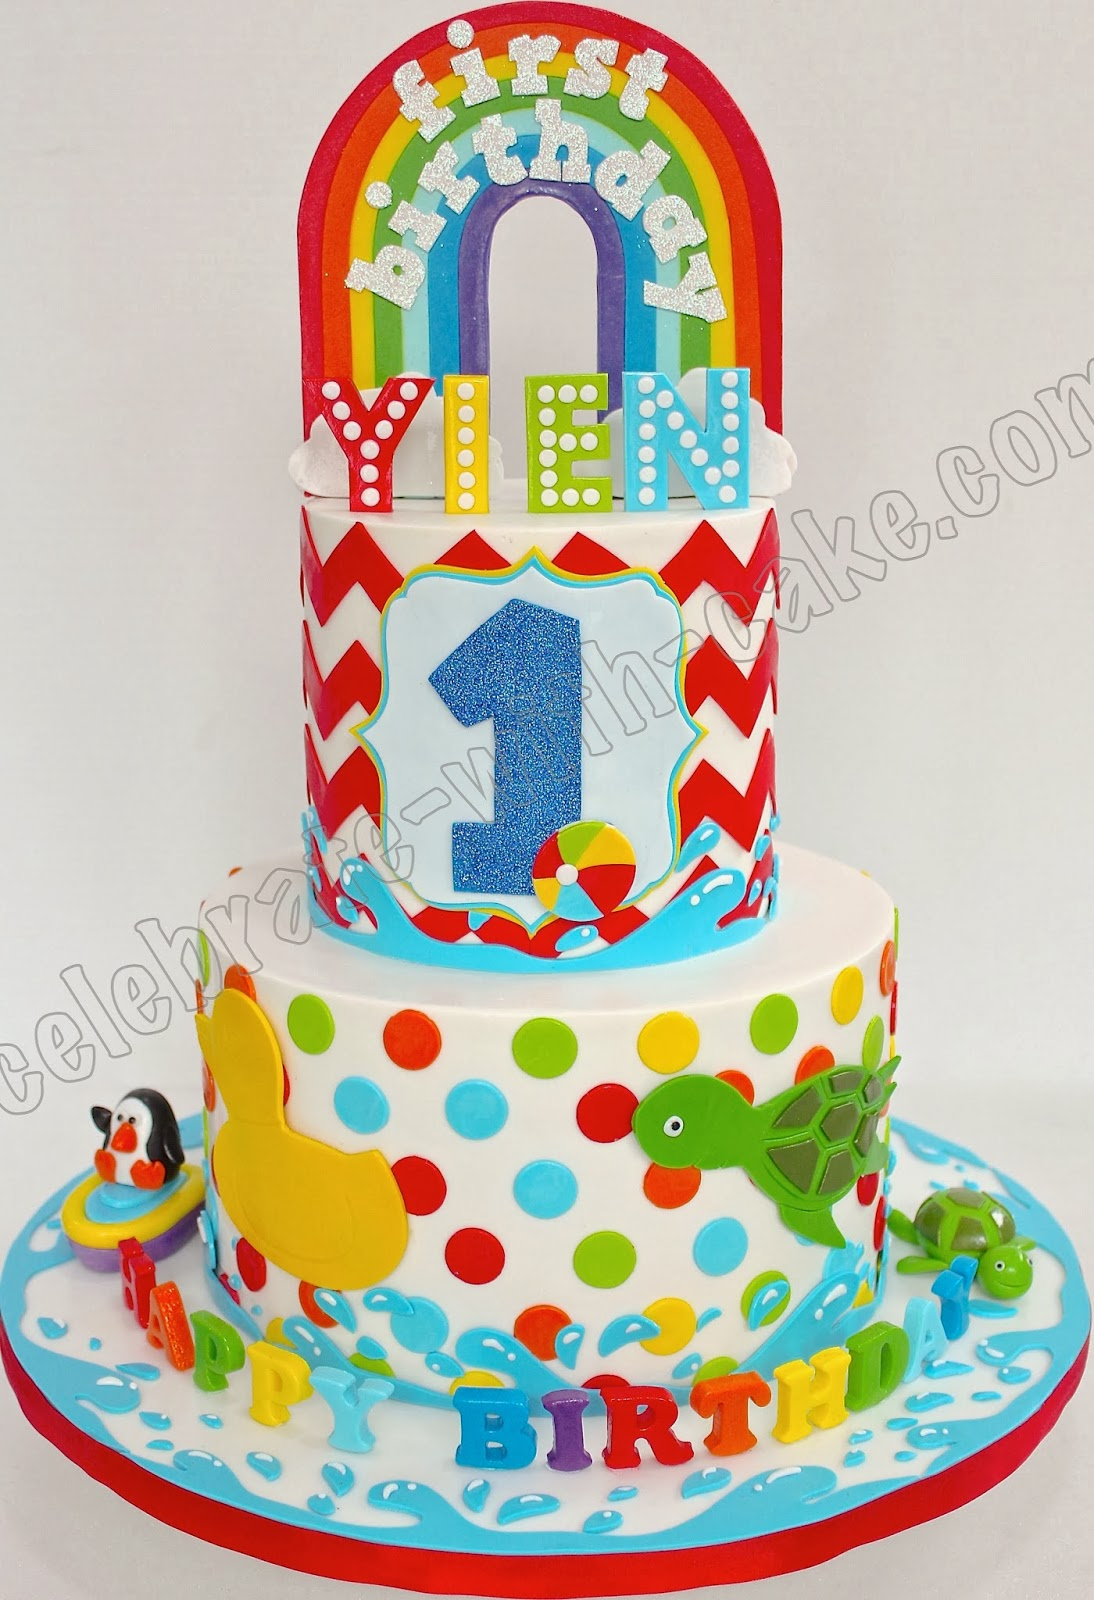 Toys For A 1st Birthday : Celebrate with cake baby toys st birthday tier